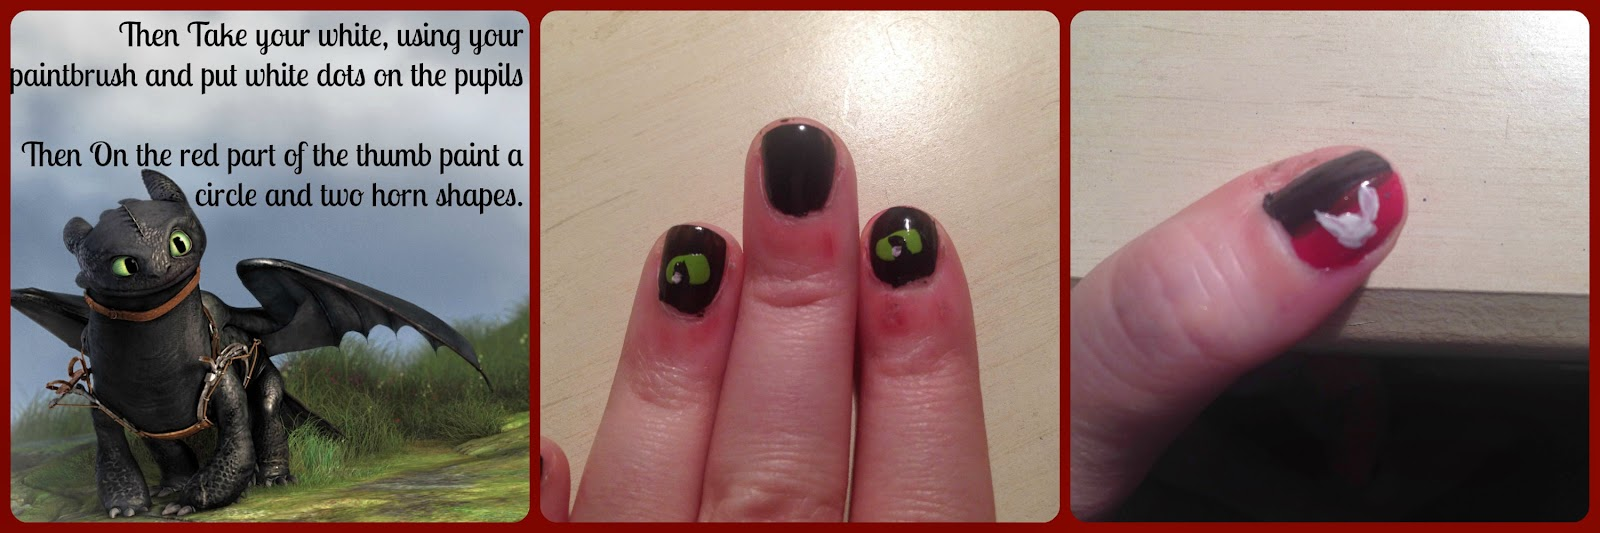 How To Train Your Dragon Nail Art Cherry Blossom